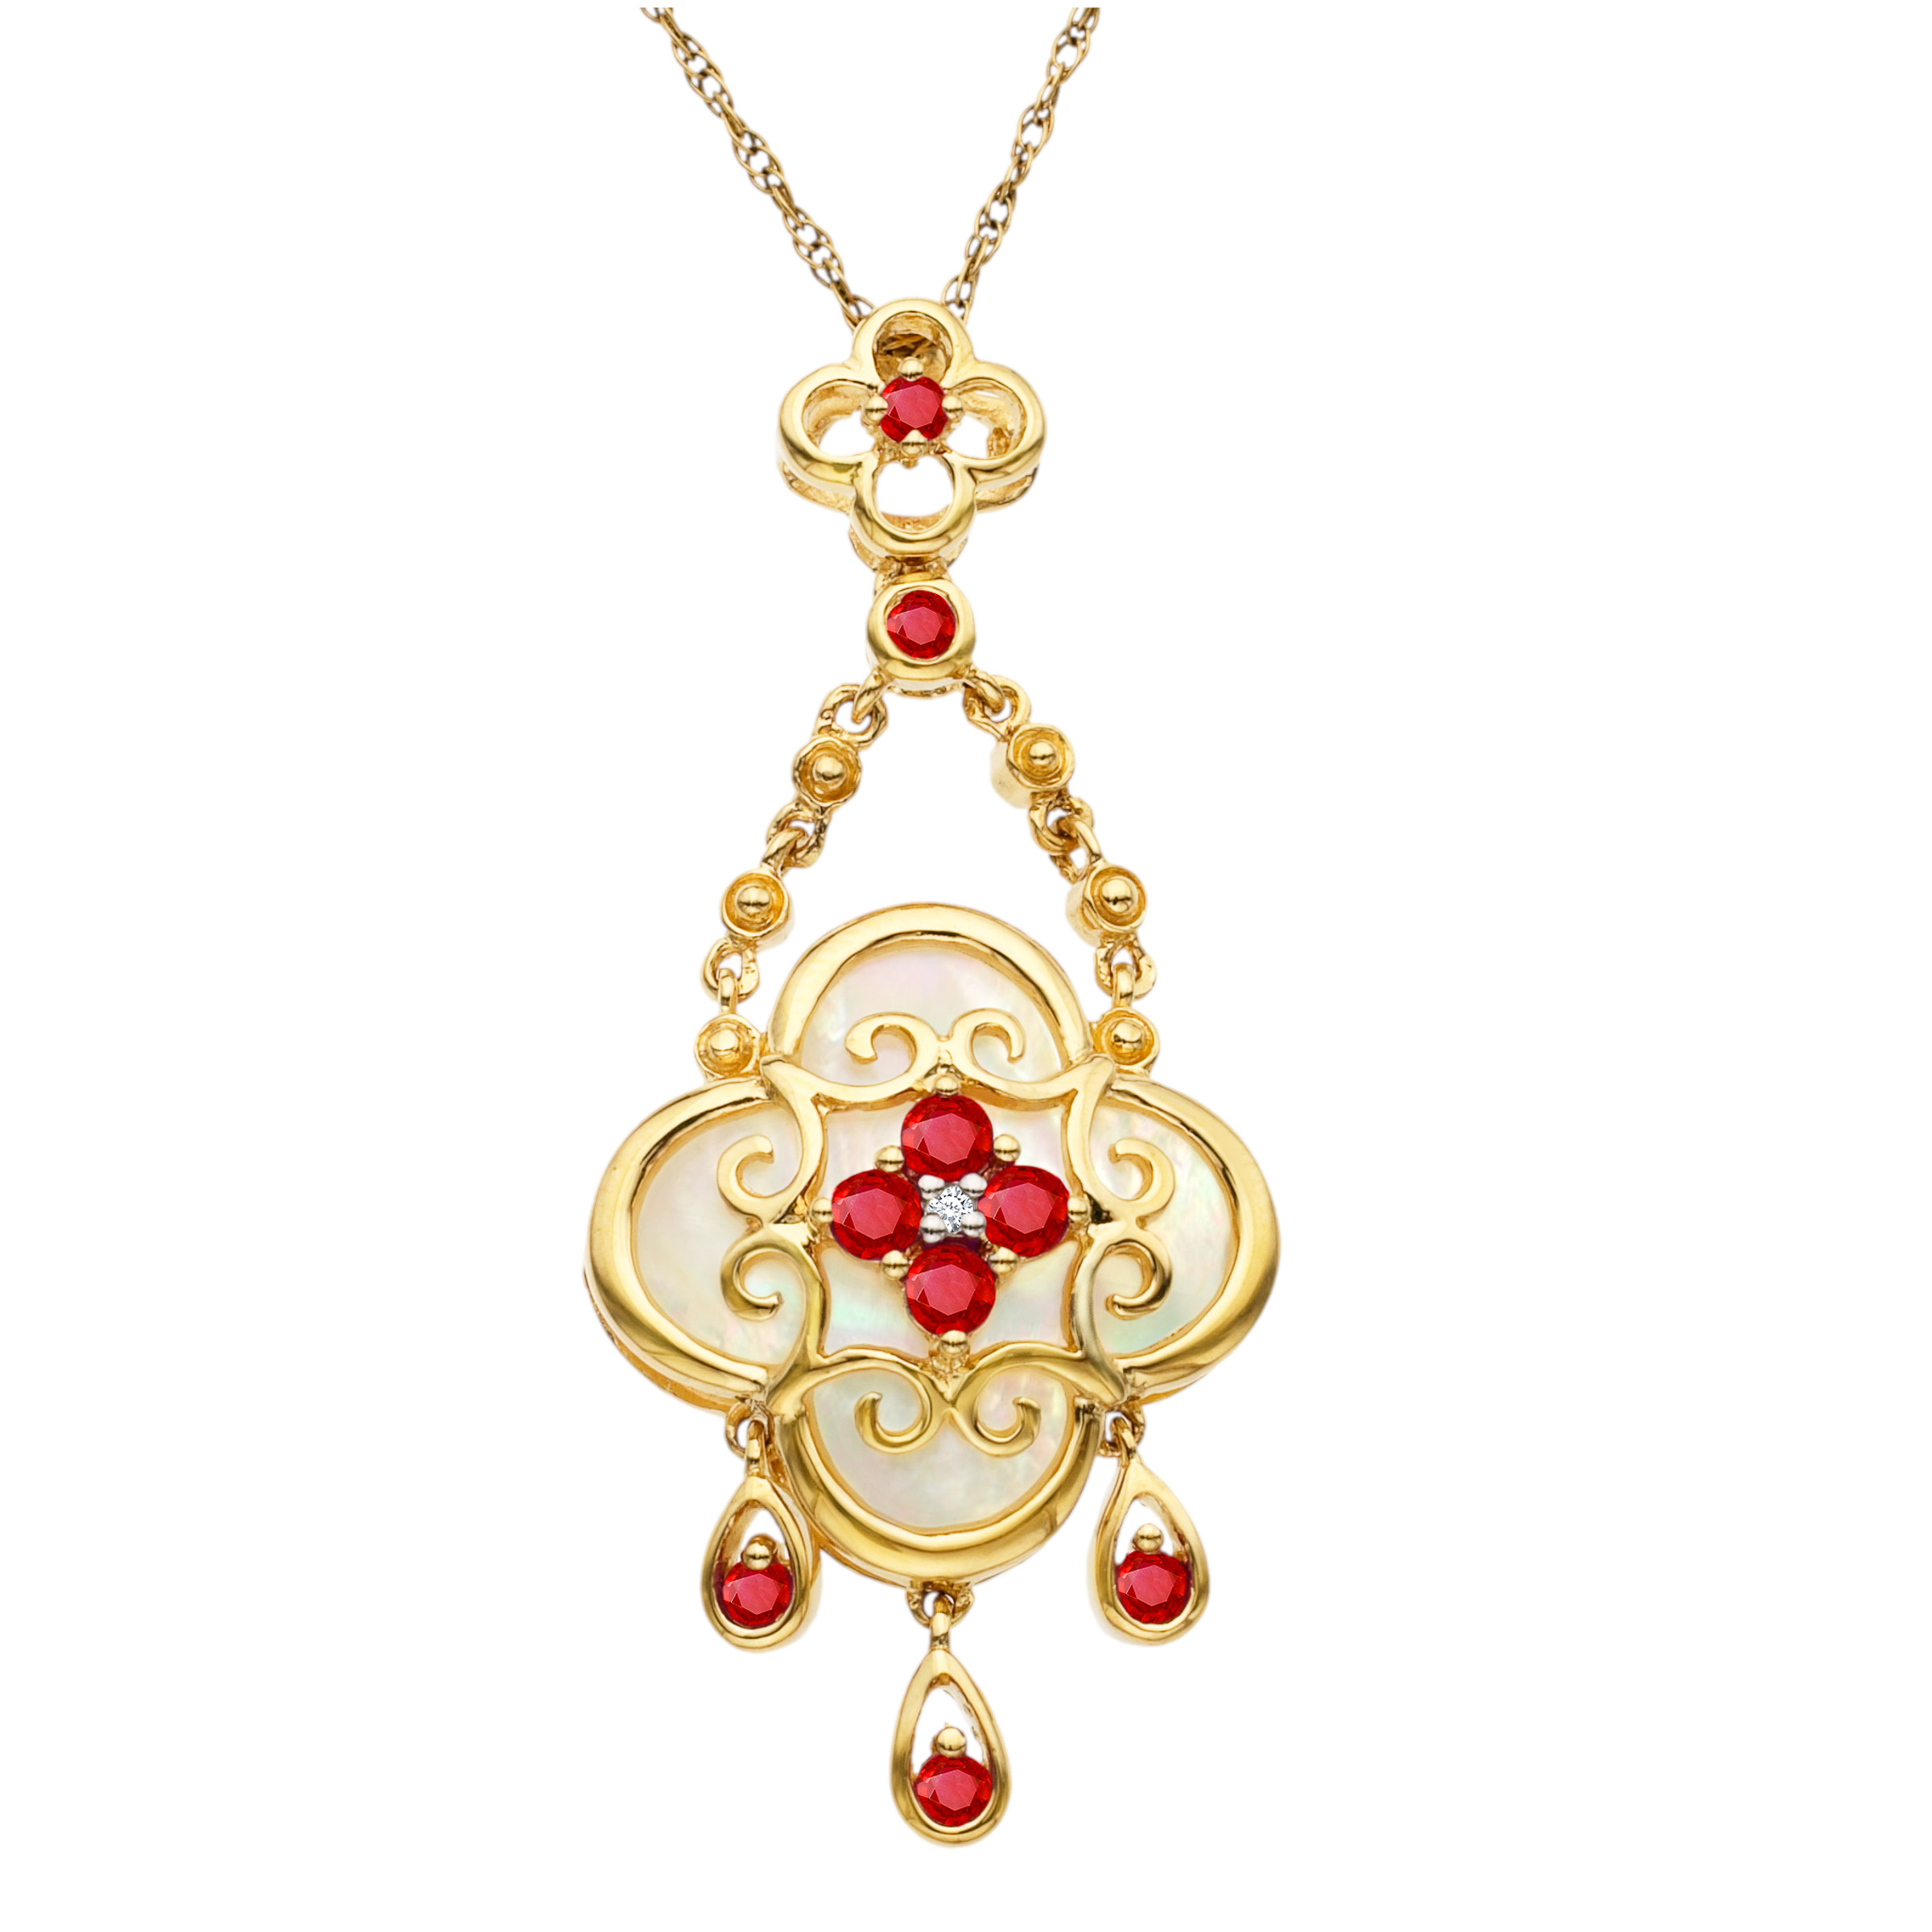 3 8 ct Ruby and Natural Mother-of-Pearl Pendant Necklace in 10kt Gold by Richline Group